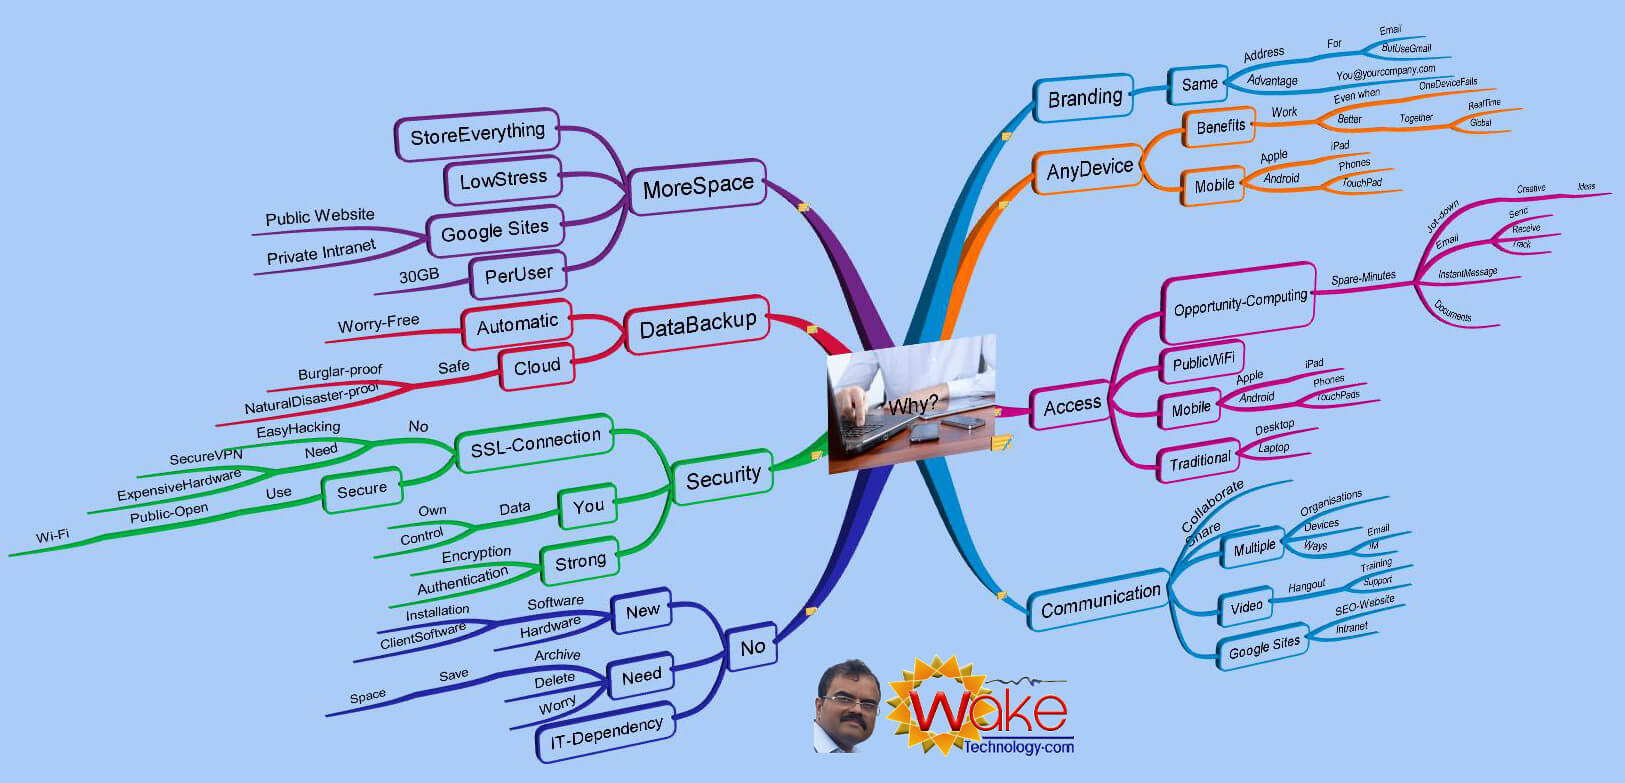 Wake Technology